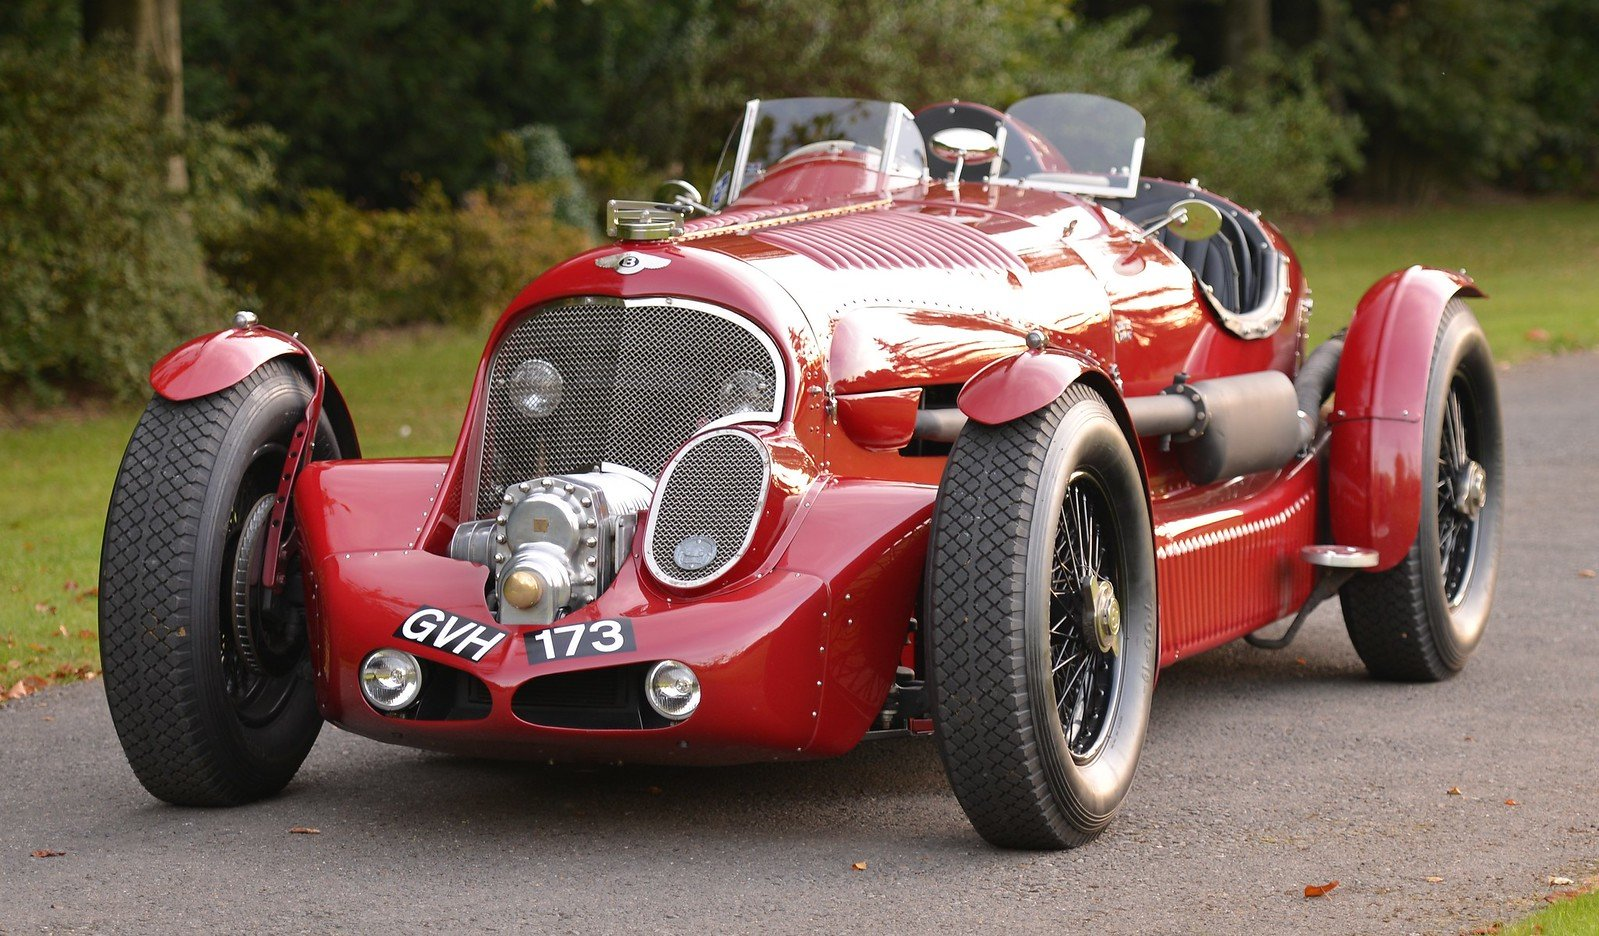 1953 Bentley 6.5 Litre Supercharged Petersen Racer For Sale (picture 1 of 6)